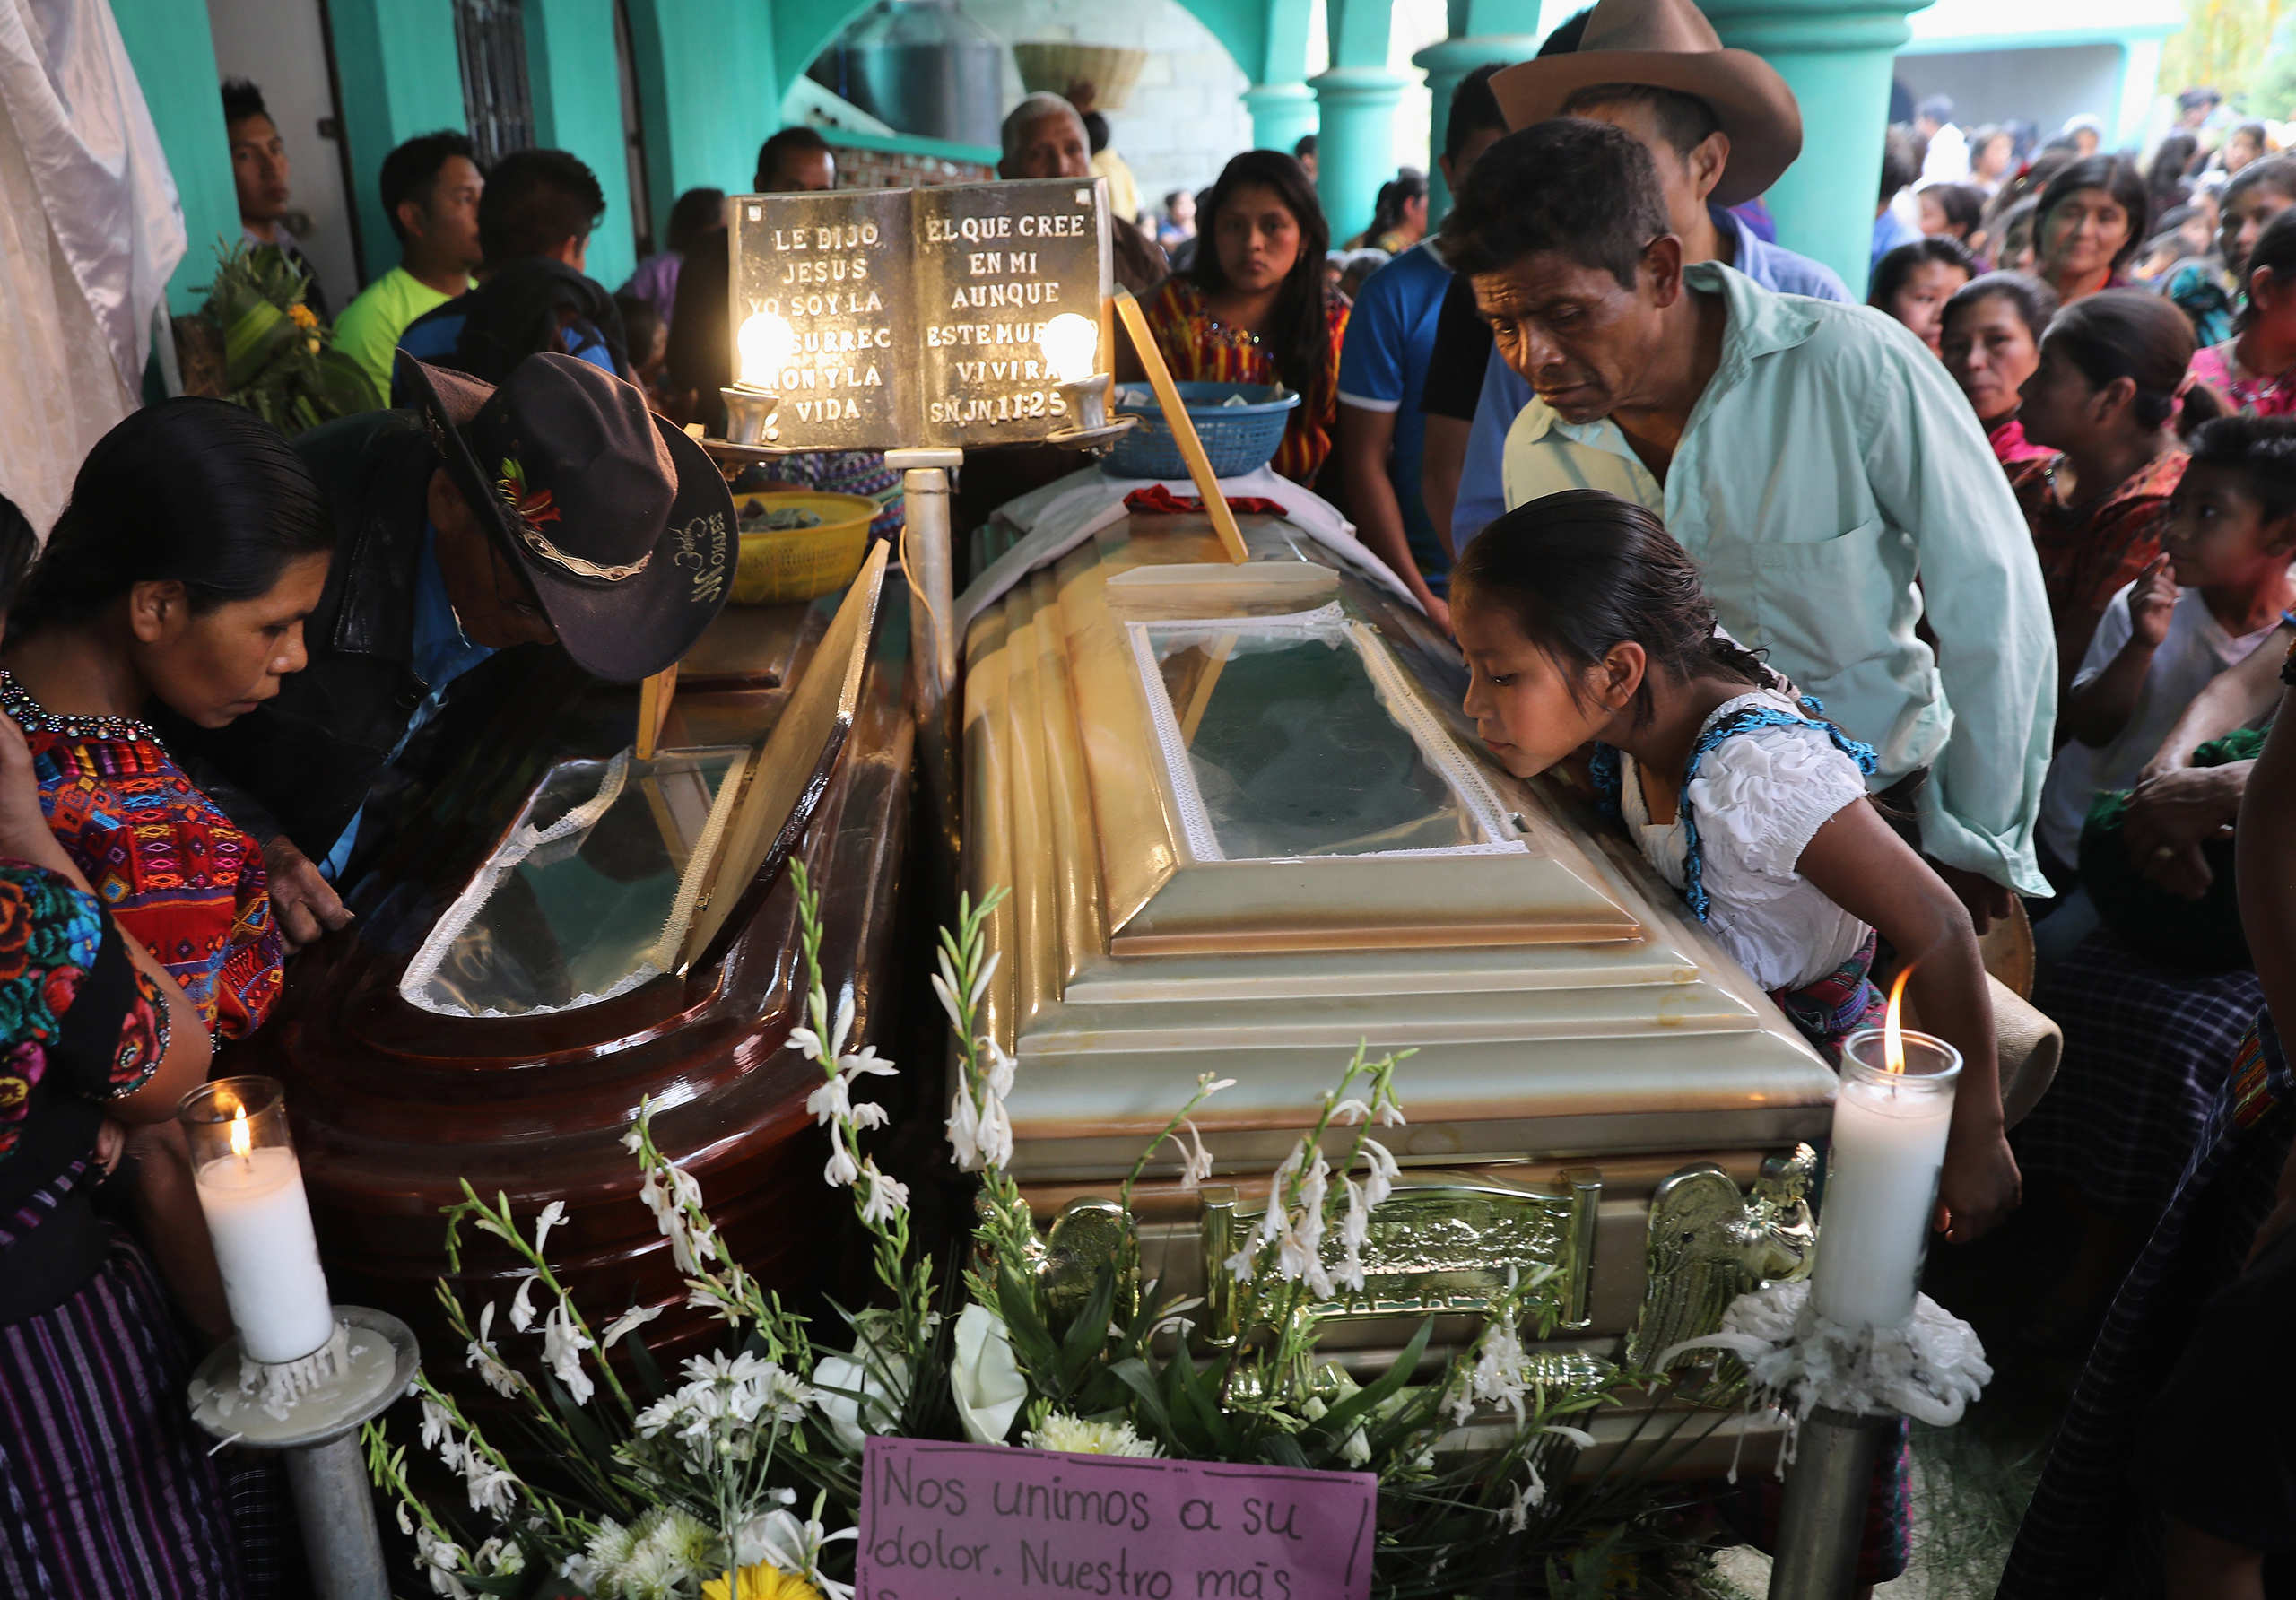 Residents attend a wake for two boys who were kidnapped and killed in San Juan Sacatepéquez on Feb. 14, 2017.